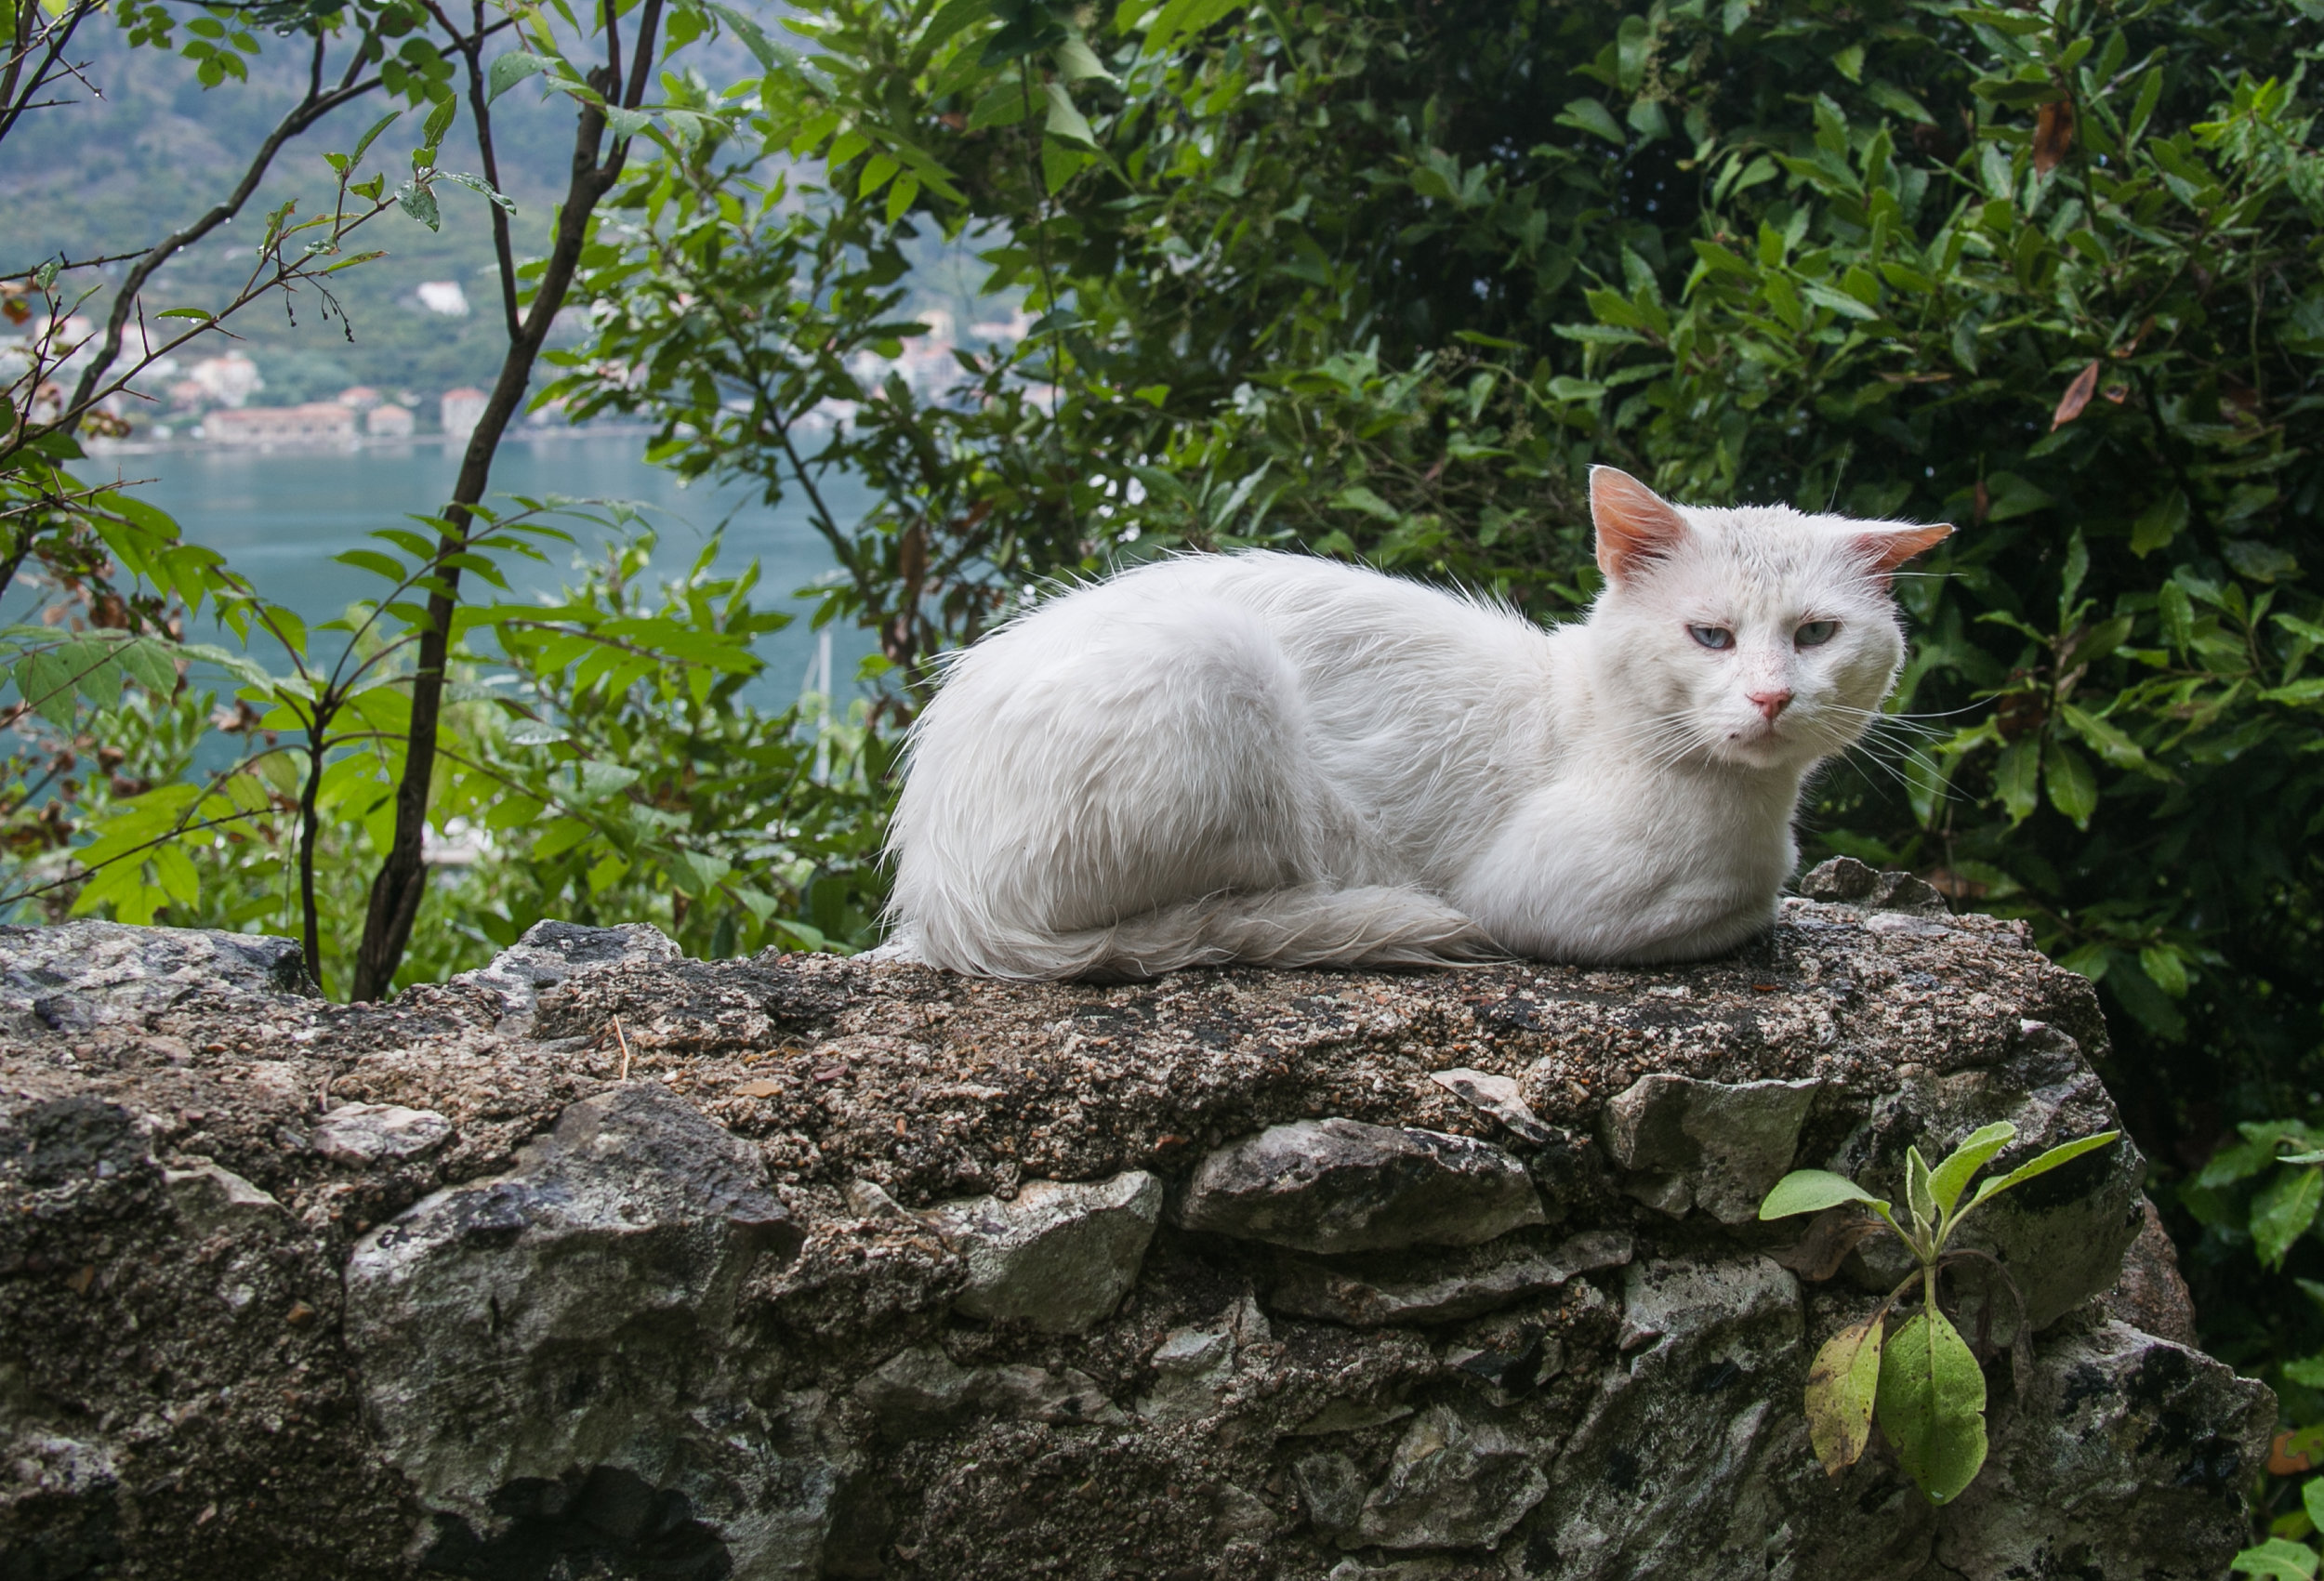 One of the many stray cats roaming around the labyrinth-like streets of the Old City in Kotor, Montenegro.